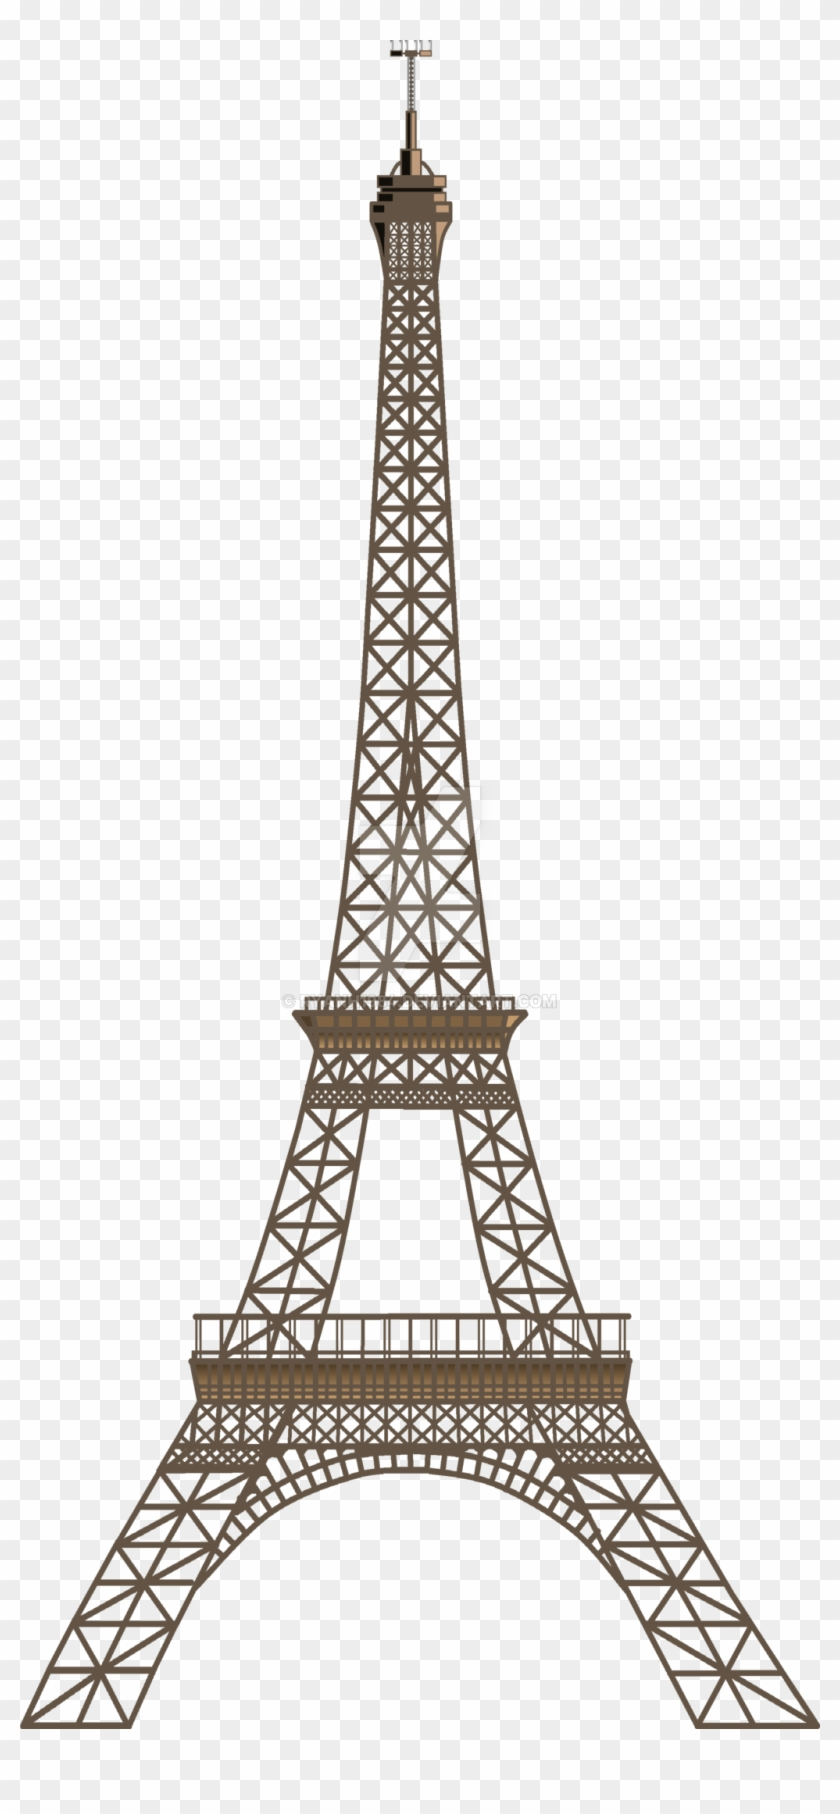 Eiffel Tower Transparent Hd Png Download 1024x2163 2722505 Pngfind